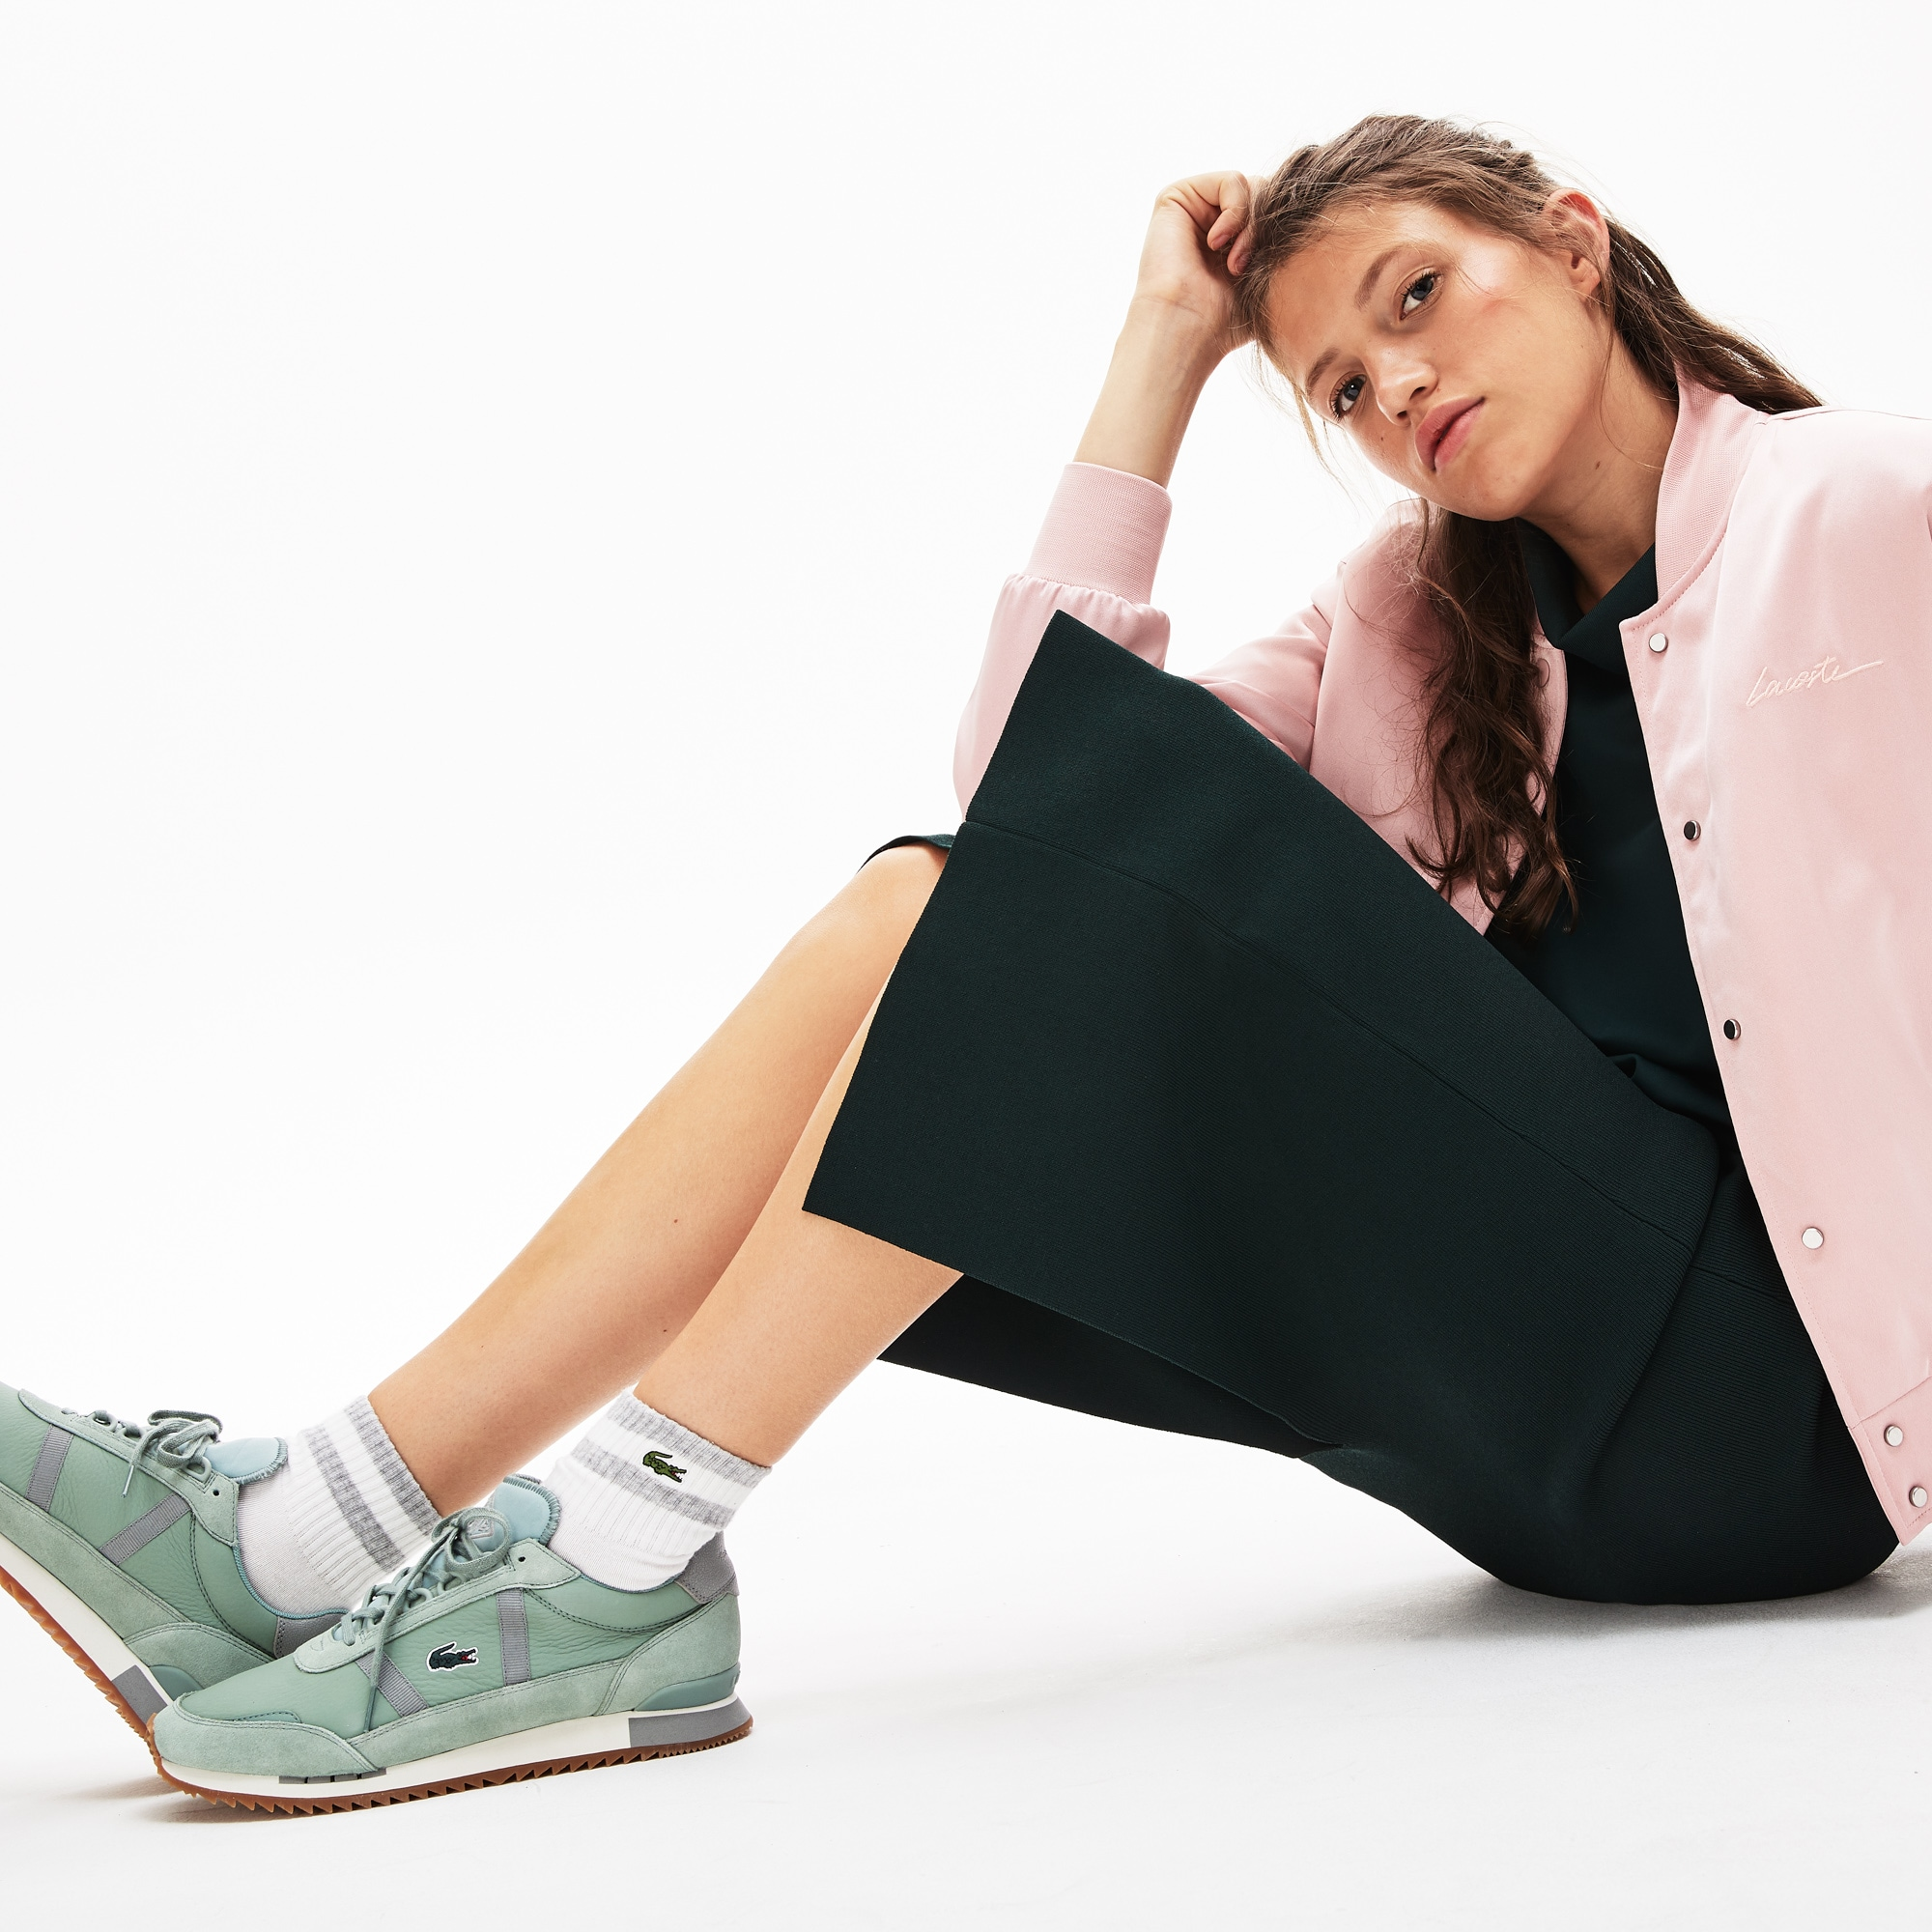 Damen-Sneakers PARTNER RETRO aus Leder und Veloursleder